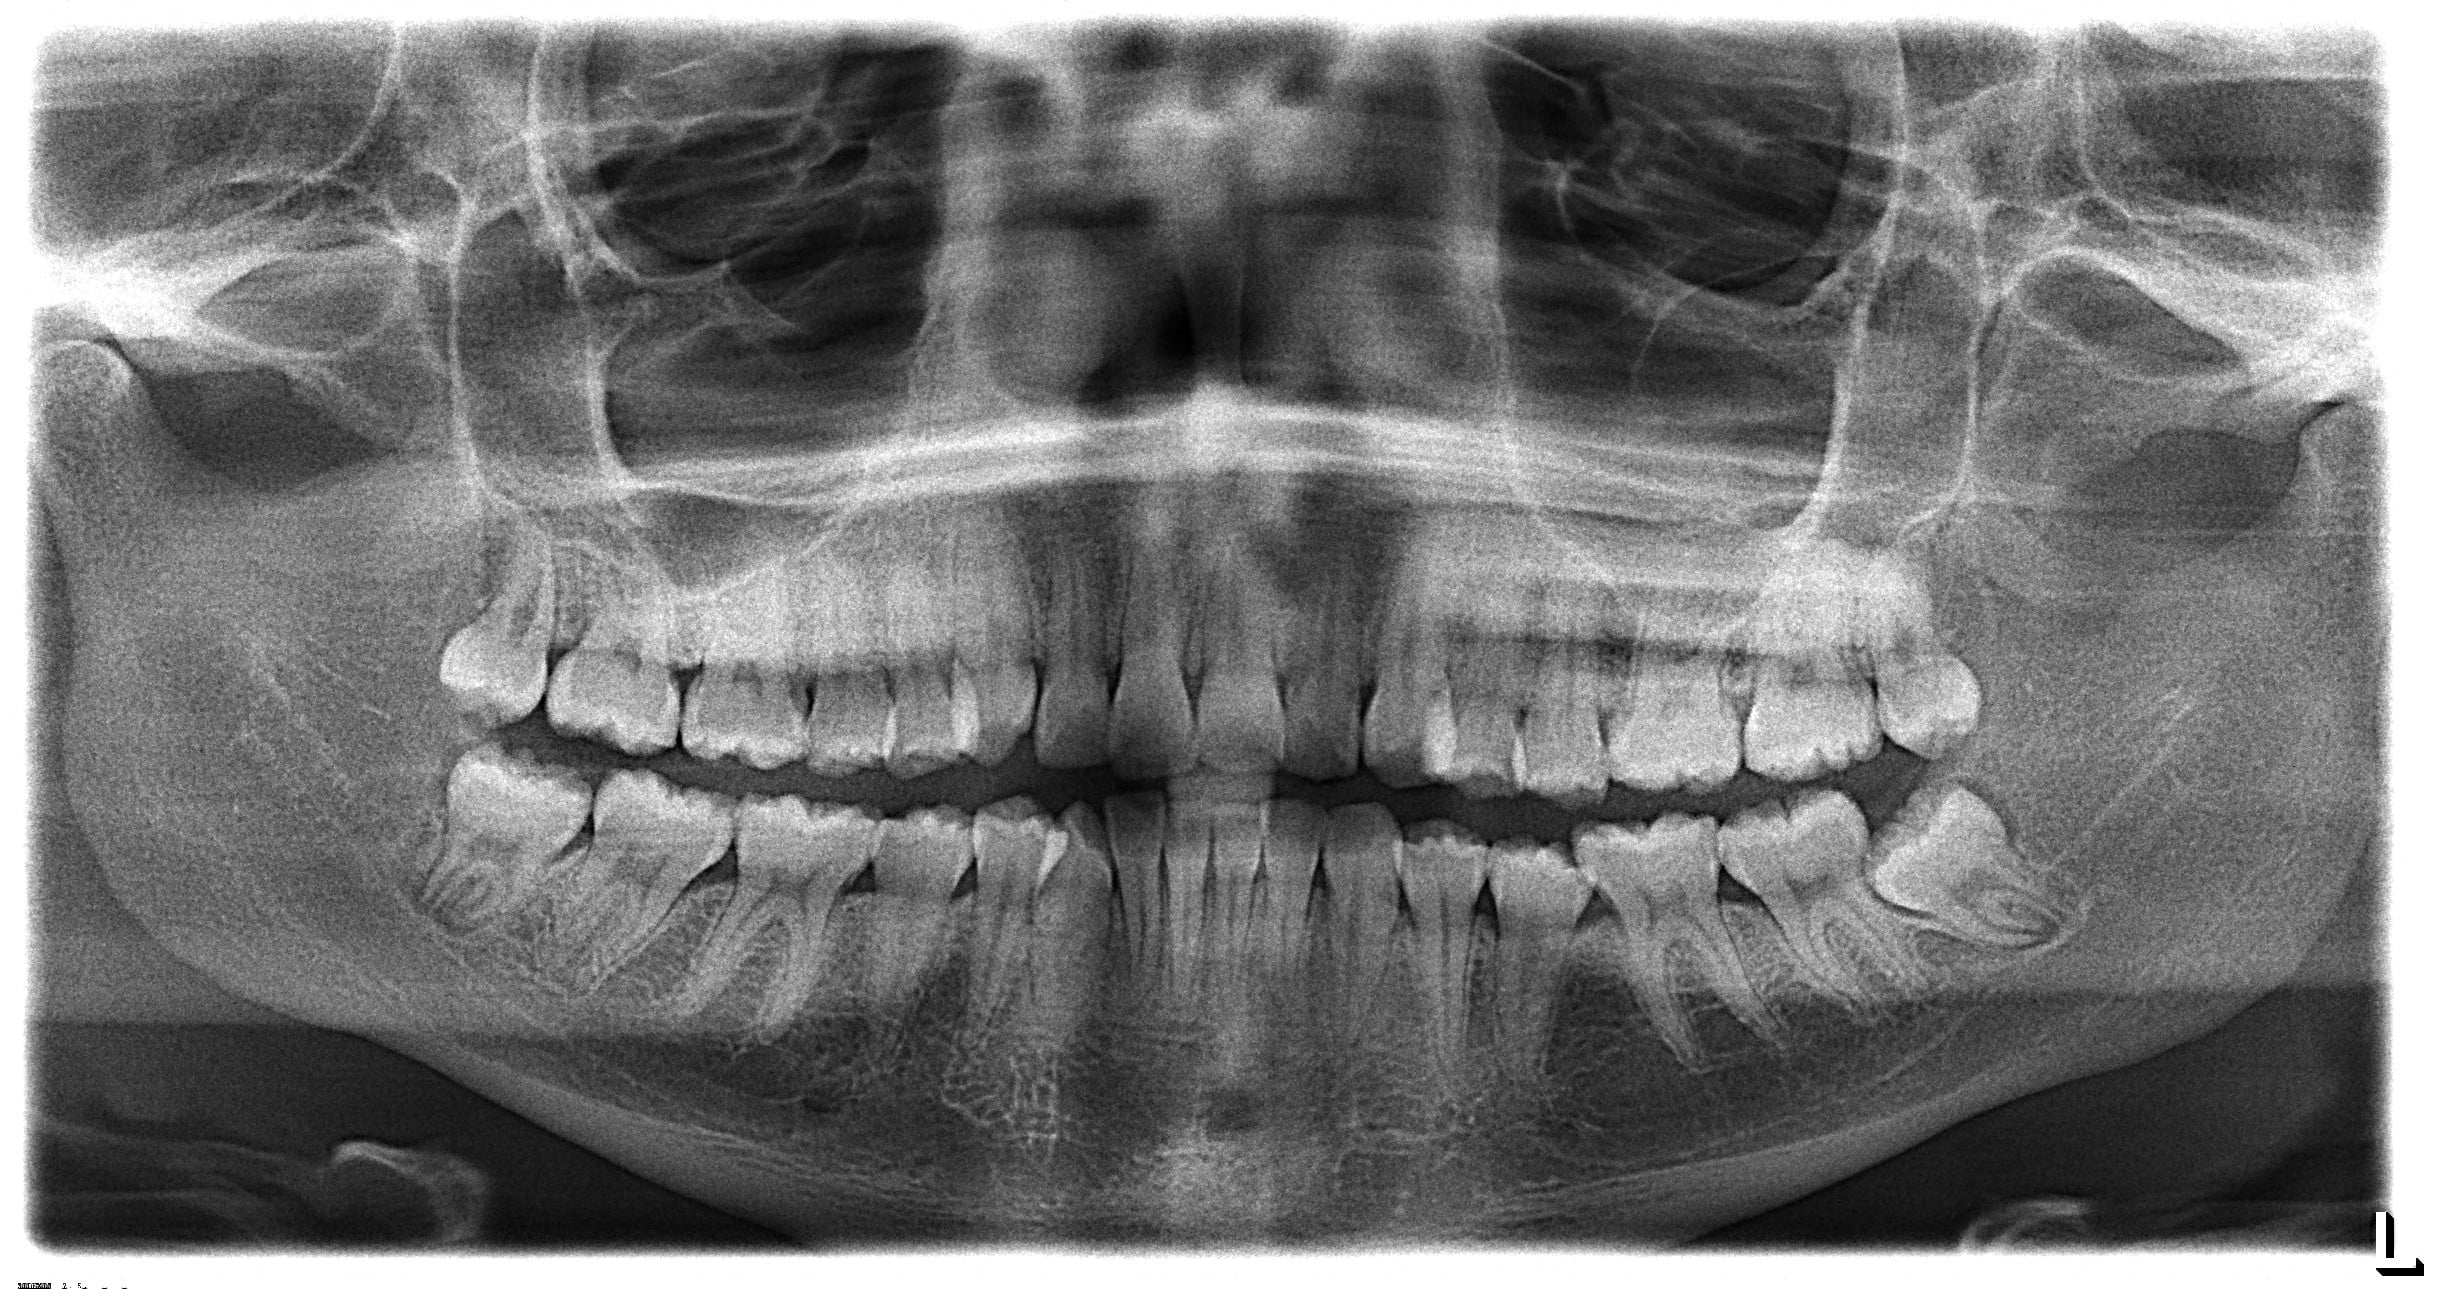 dental cleanings and exams and x-rays